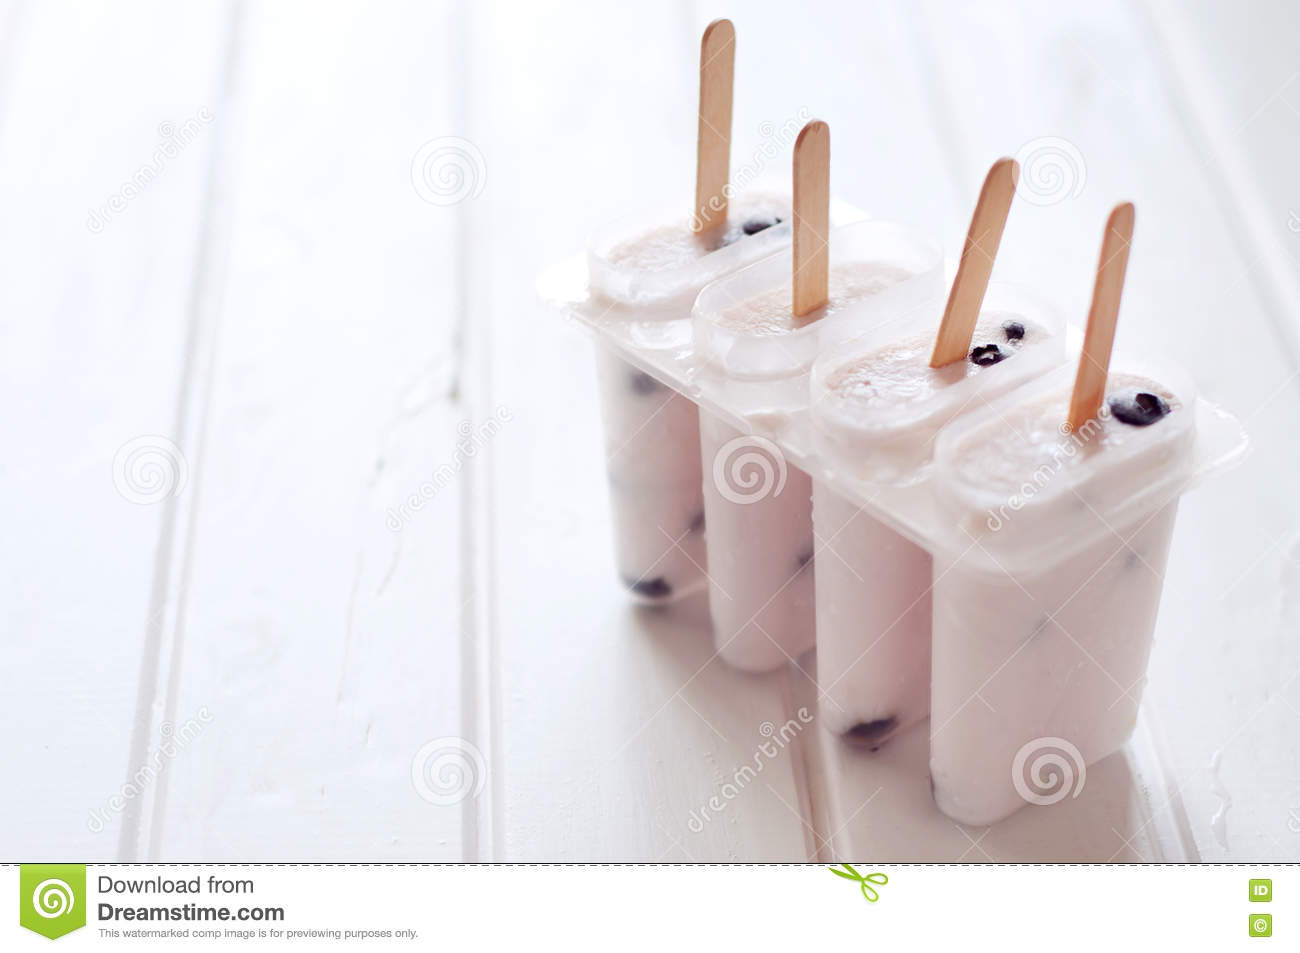 Ice Popsicles With Yougurt And Blueberries In Ice Lolly Mold Stock